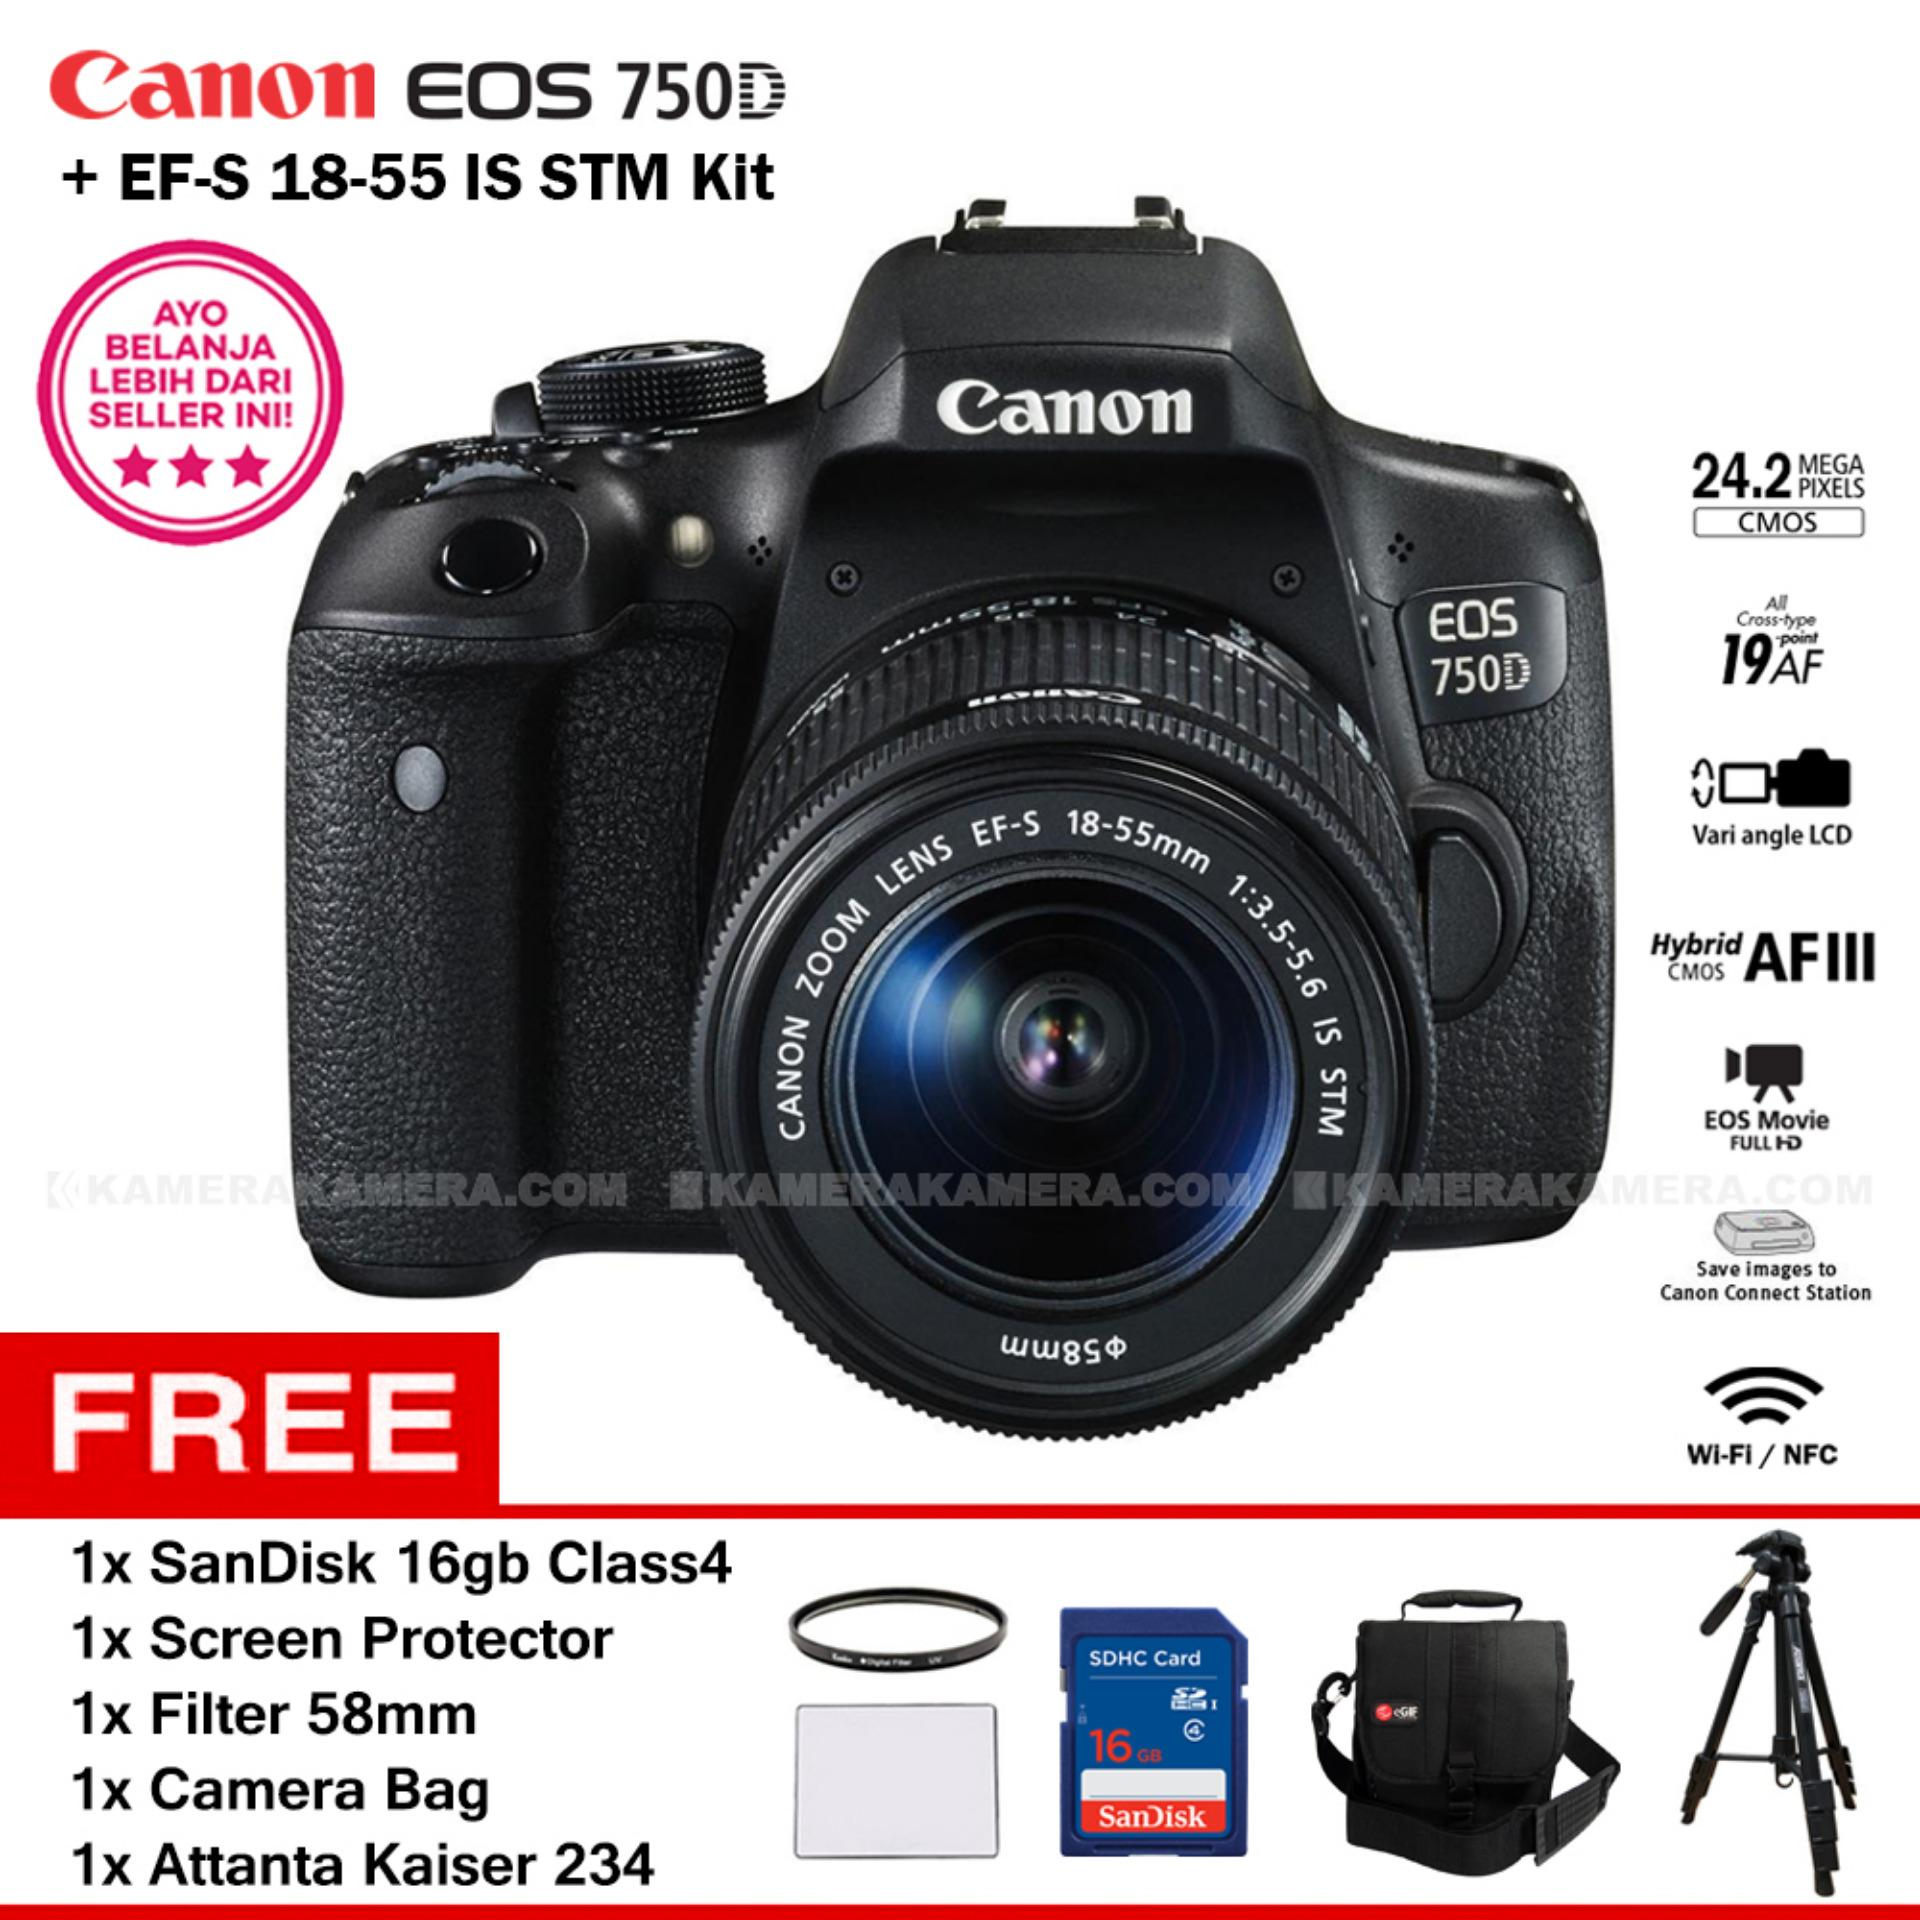 CANON EOS 750D + EF-S 18-55 IS STM Kit Lens WiFi 24.2MP 19AF point Vari-angle LCD Full HD + Filter 58mm + Screen Protector + SanDisk 16GB + Camera Bag + Attanta Kaiser 234